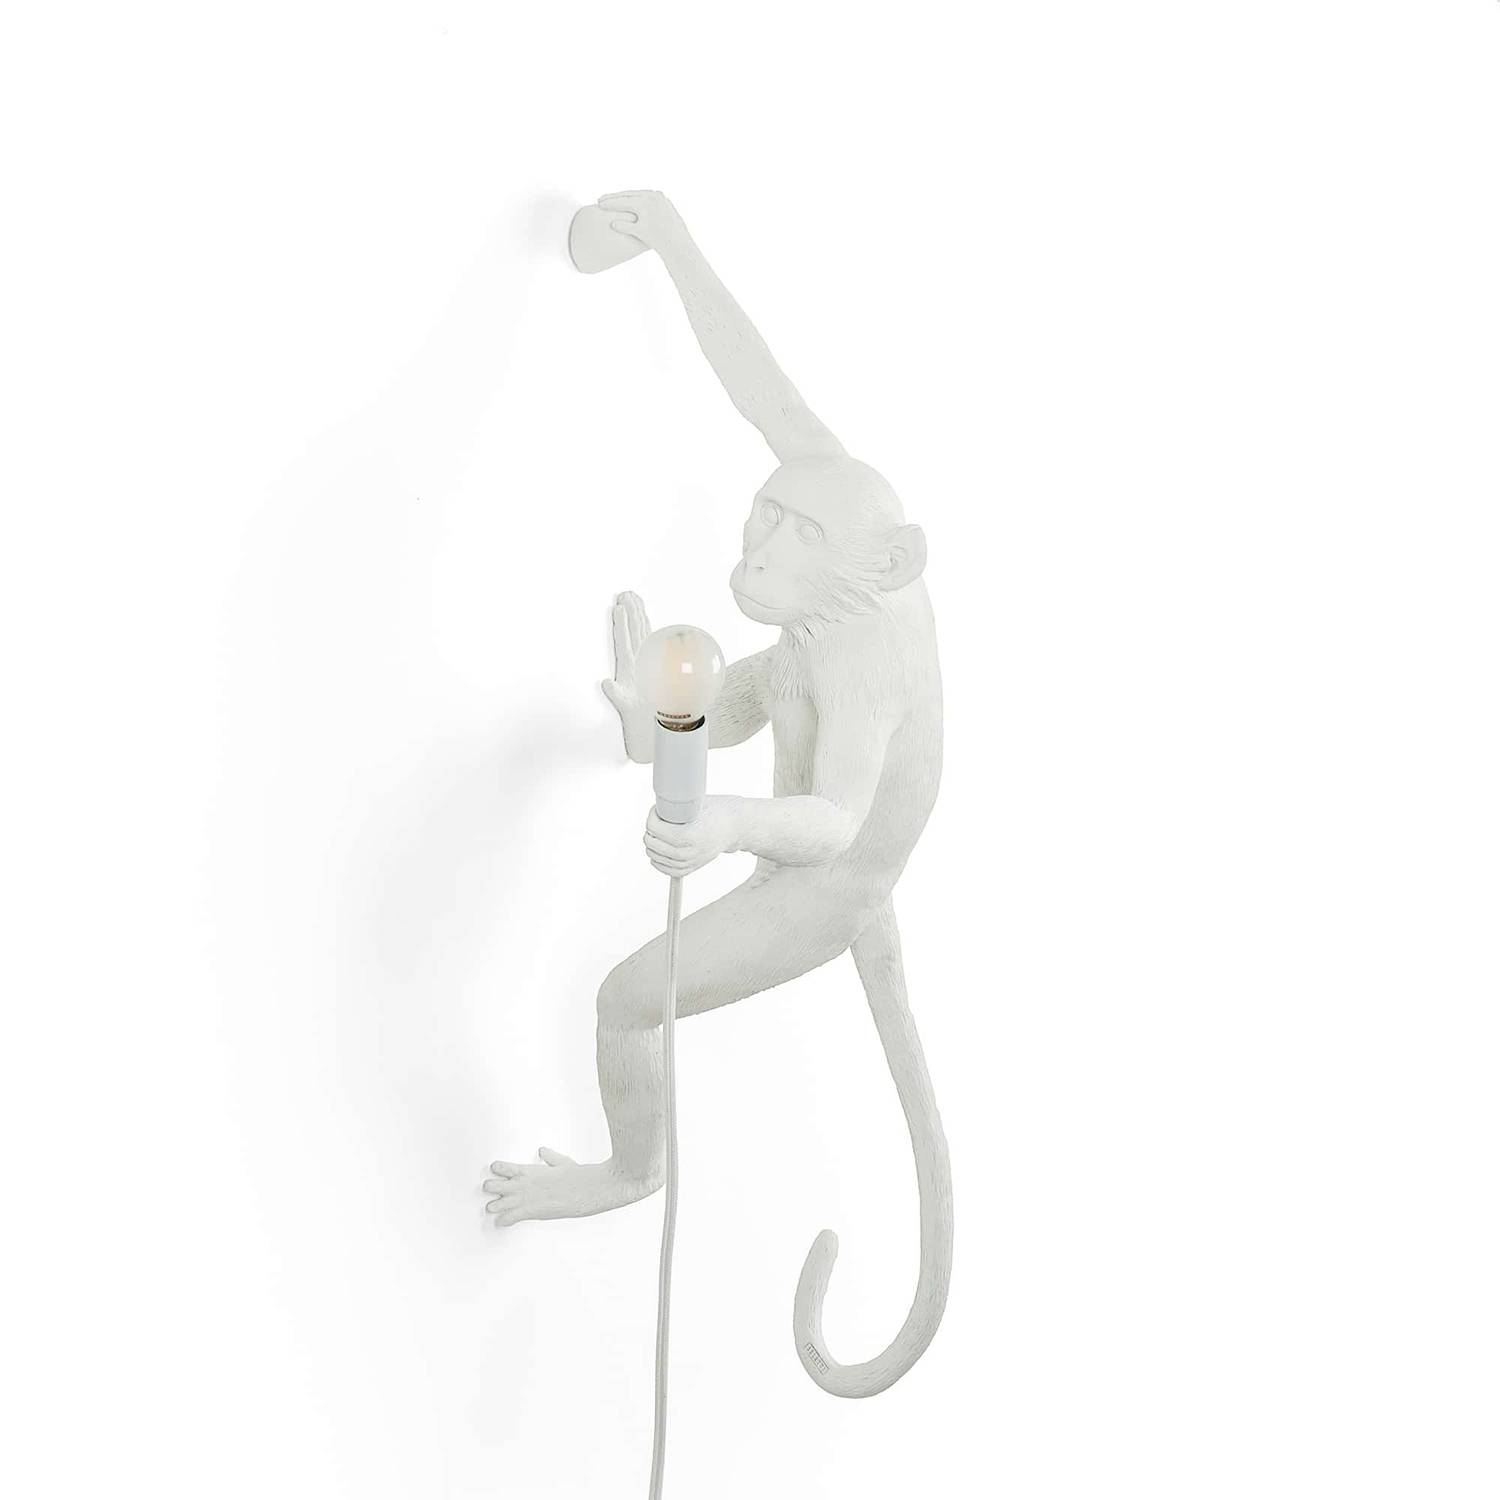 Seletti Monkey Lamp Hanging Version Right, White